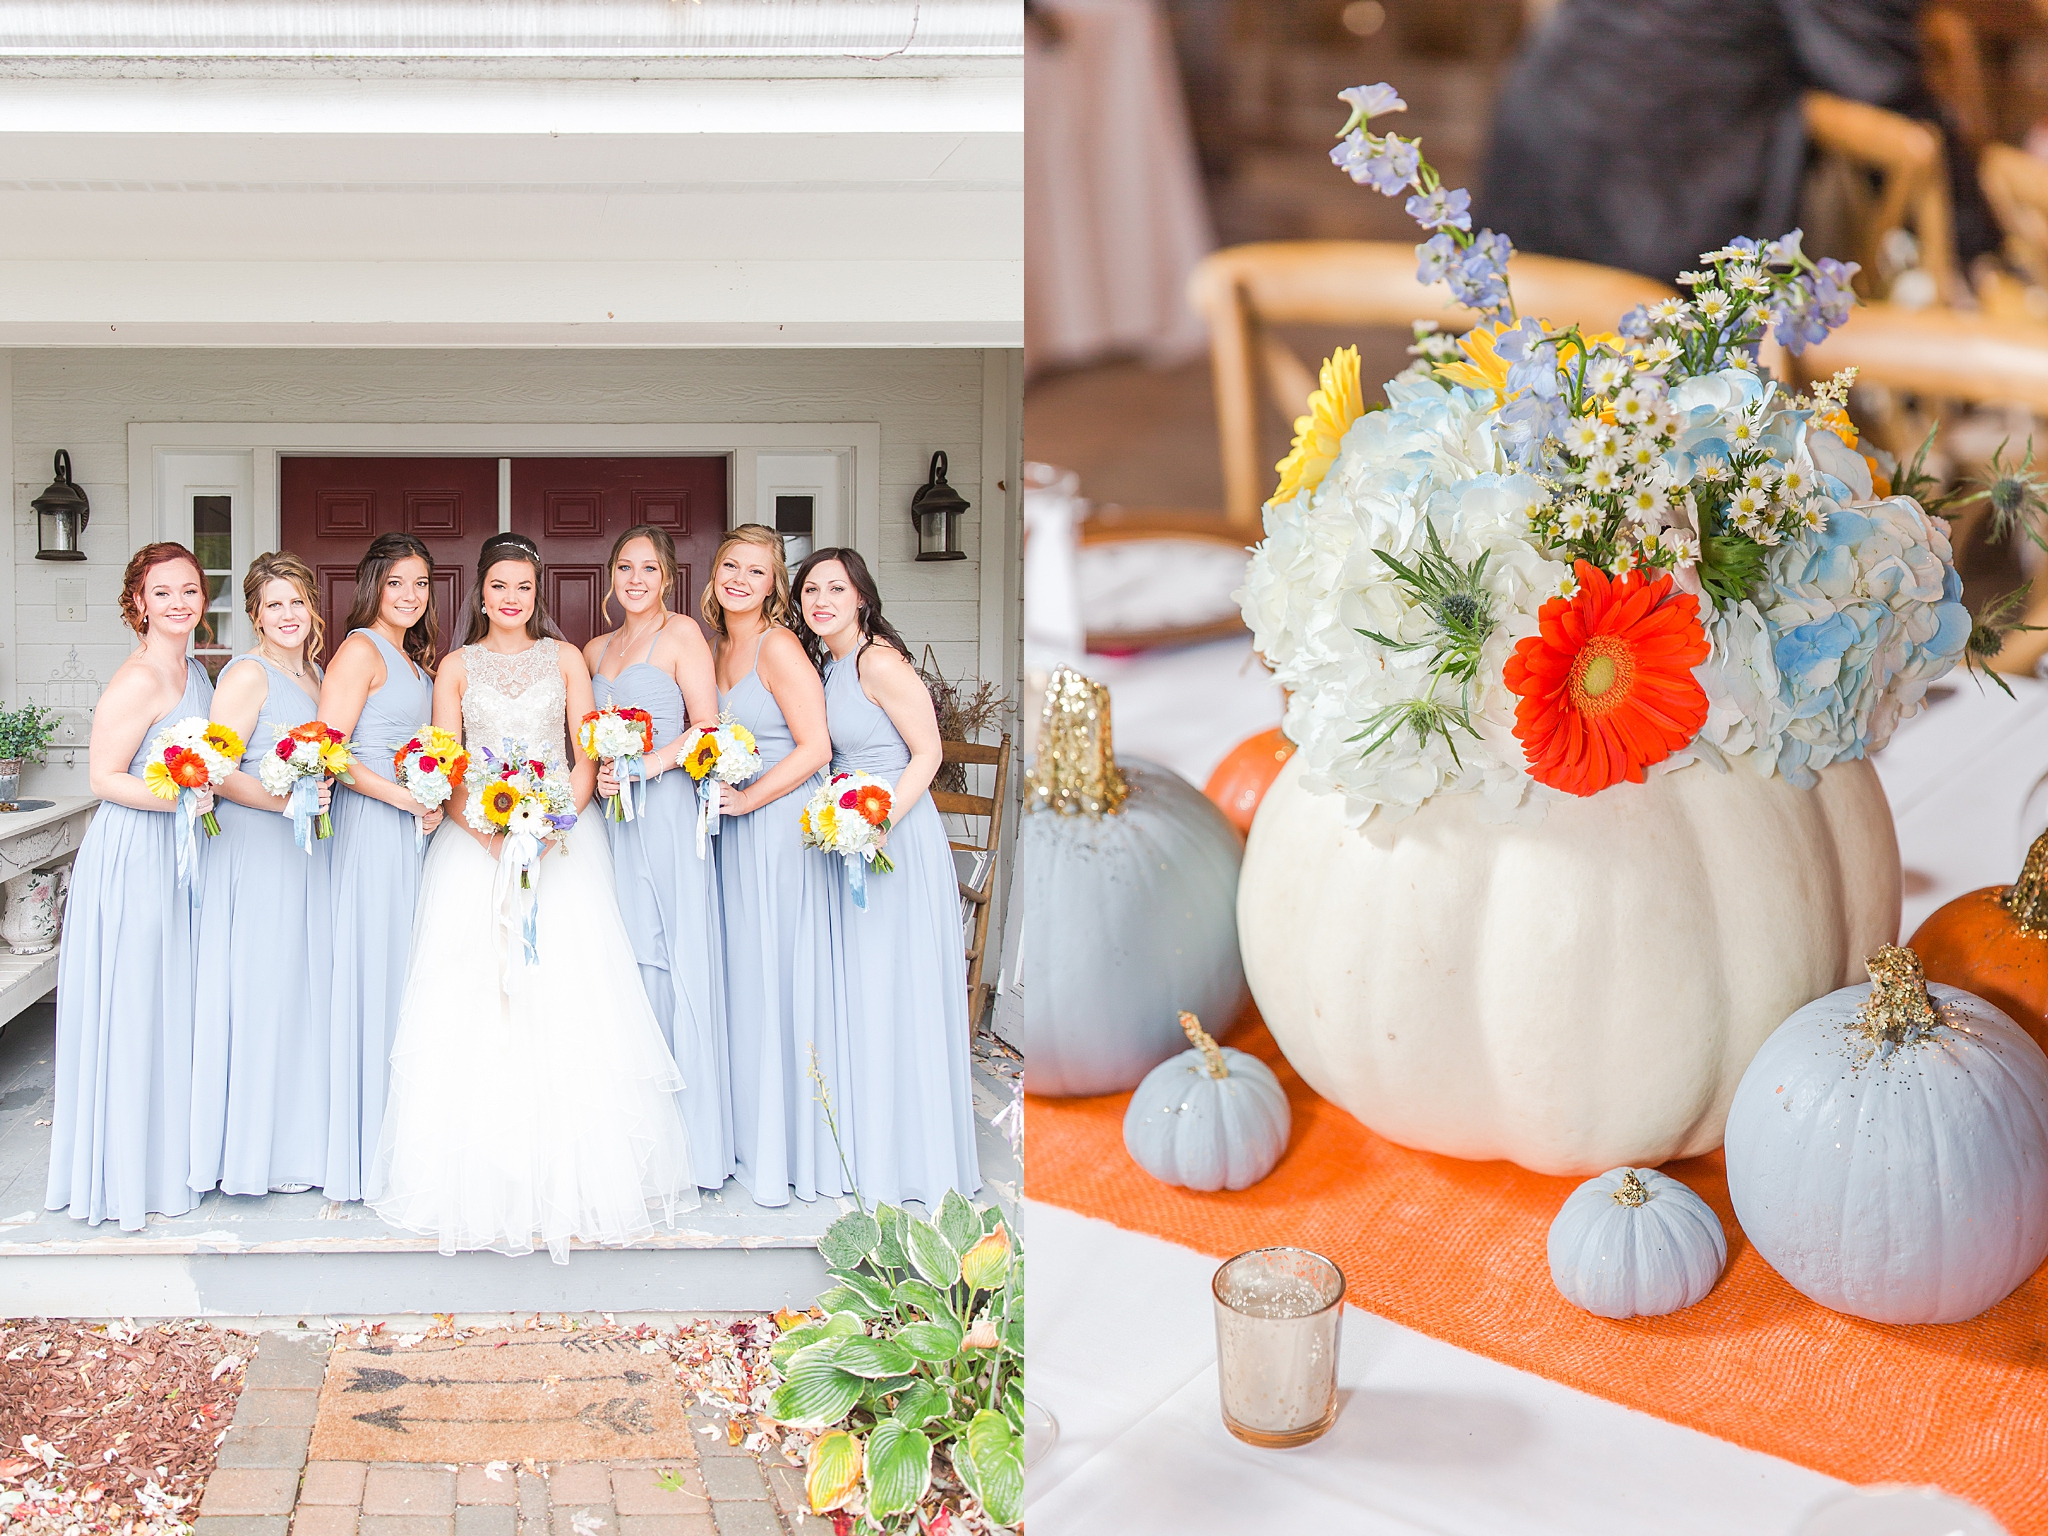 rustic-whimsical-wedding-photos-the-vale-royal-barn-in-fenton-michigan-by-courtney-carolyn-photography_0038.jpg